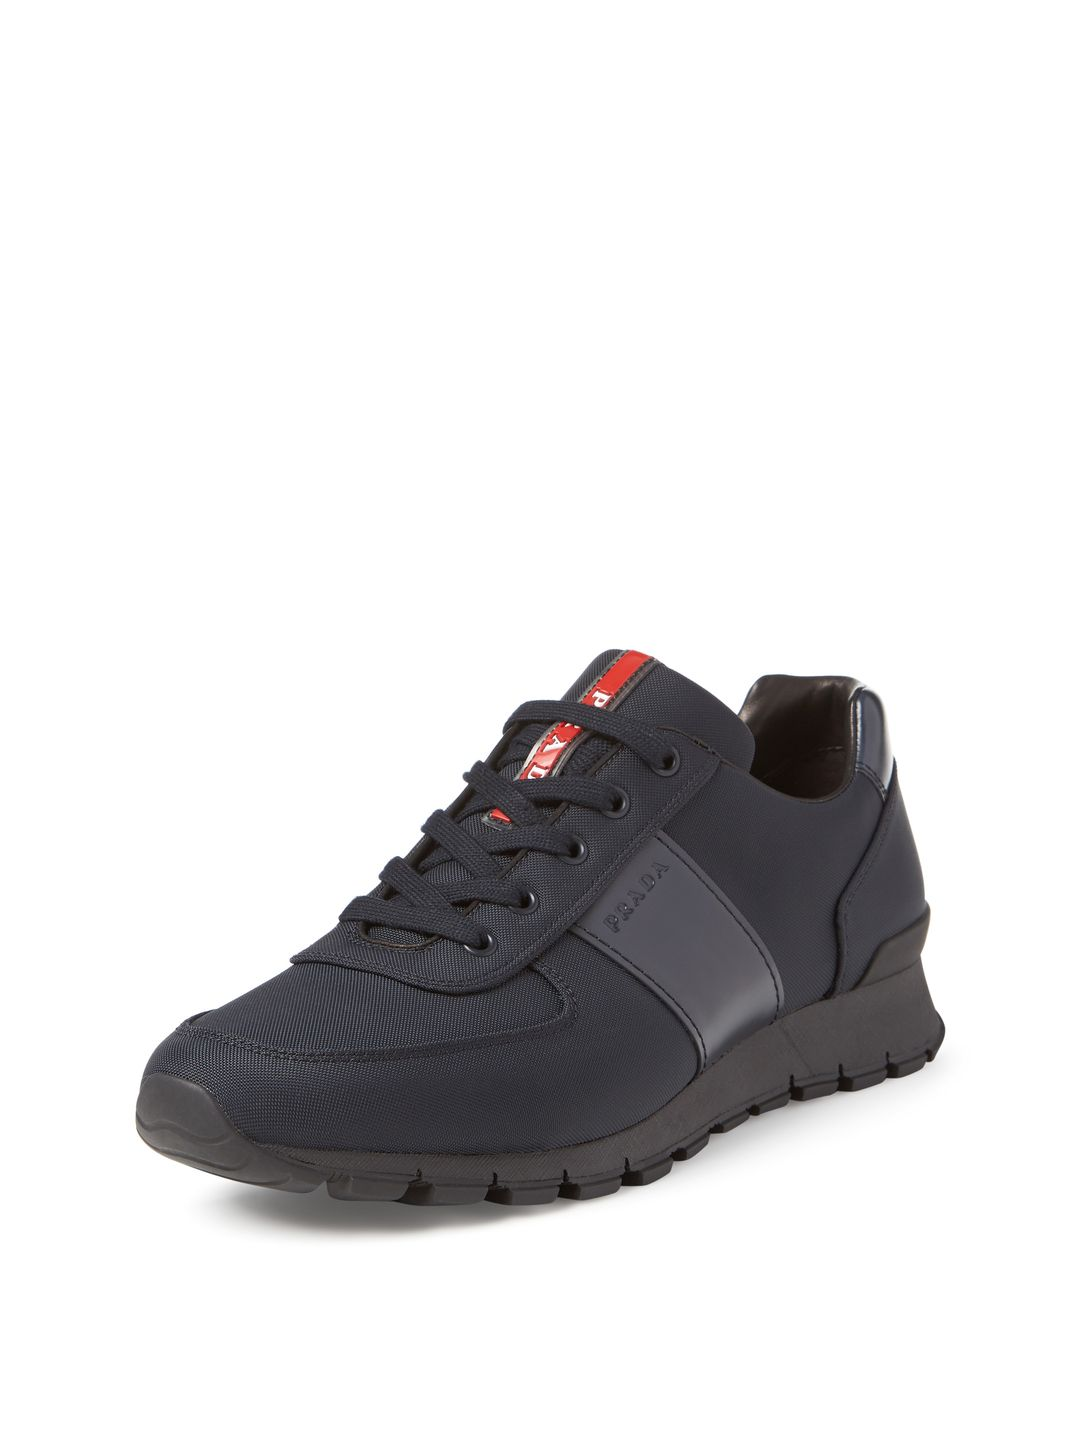 Prada Athletic Sneaker   You in 2019   Sneakers, Shoes, Prada 3aad1e2a9b3